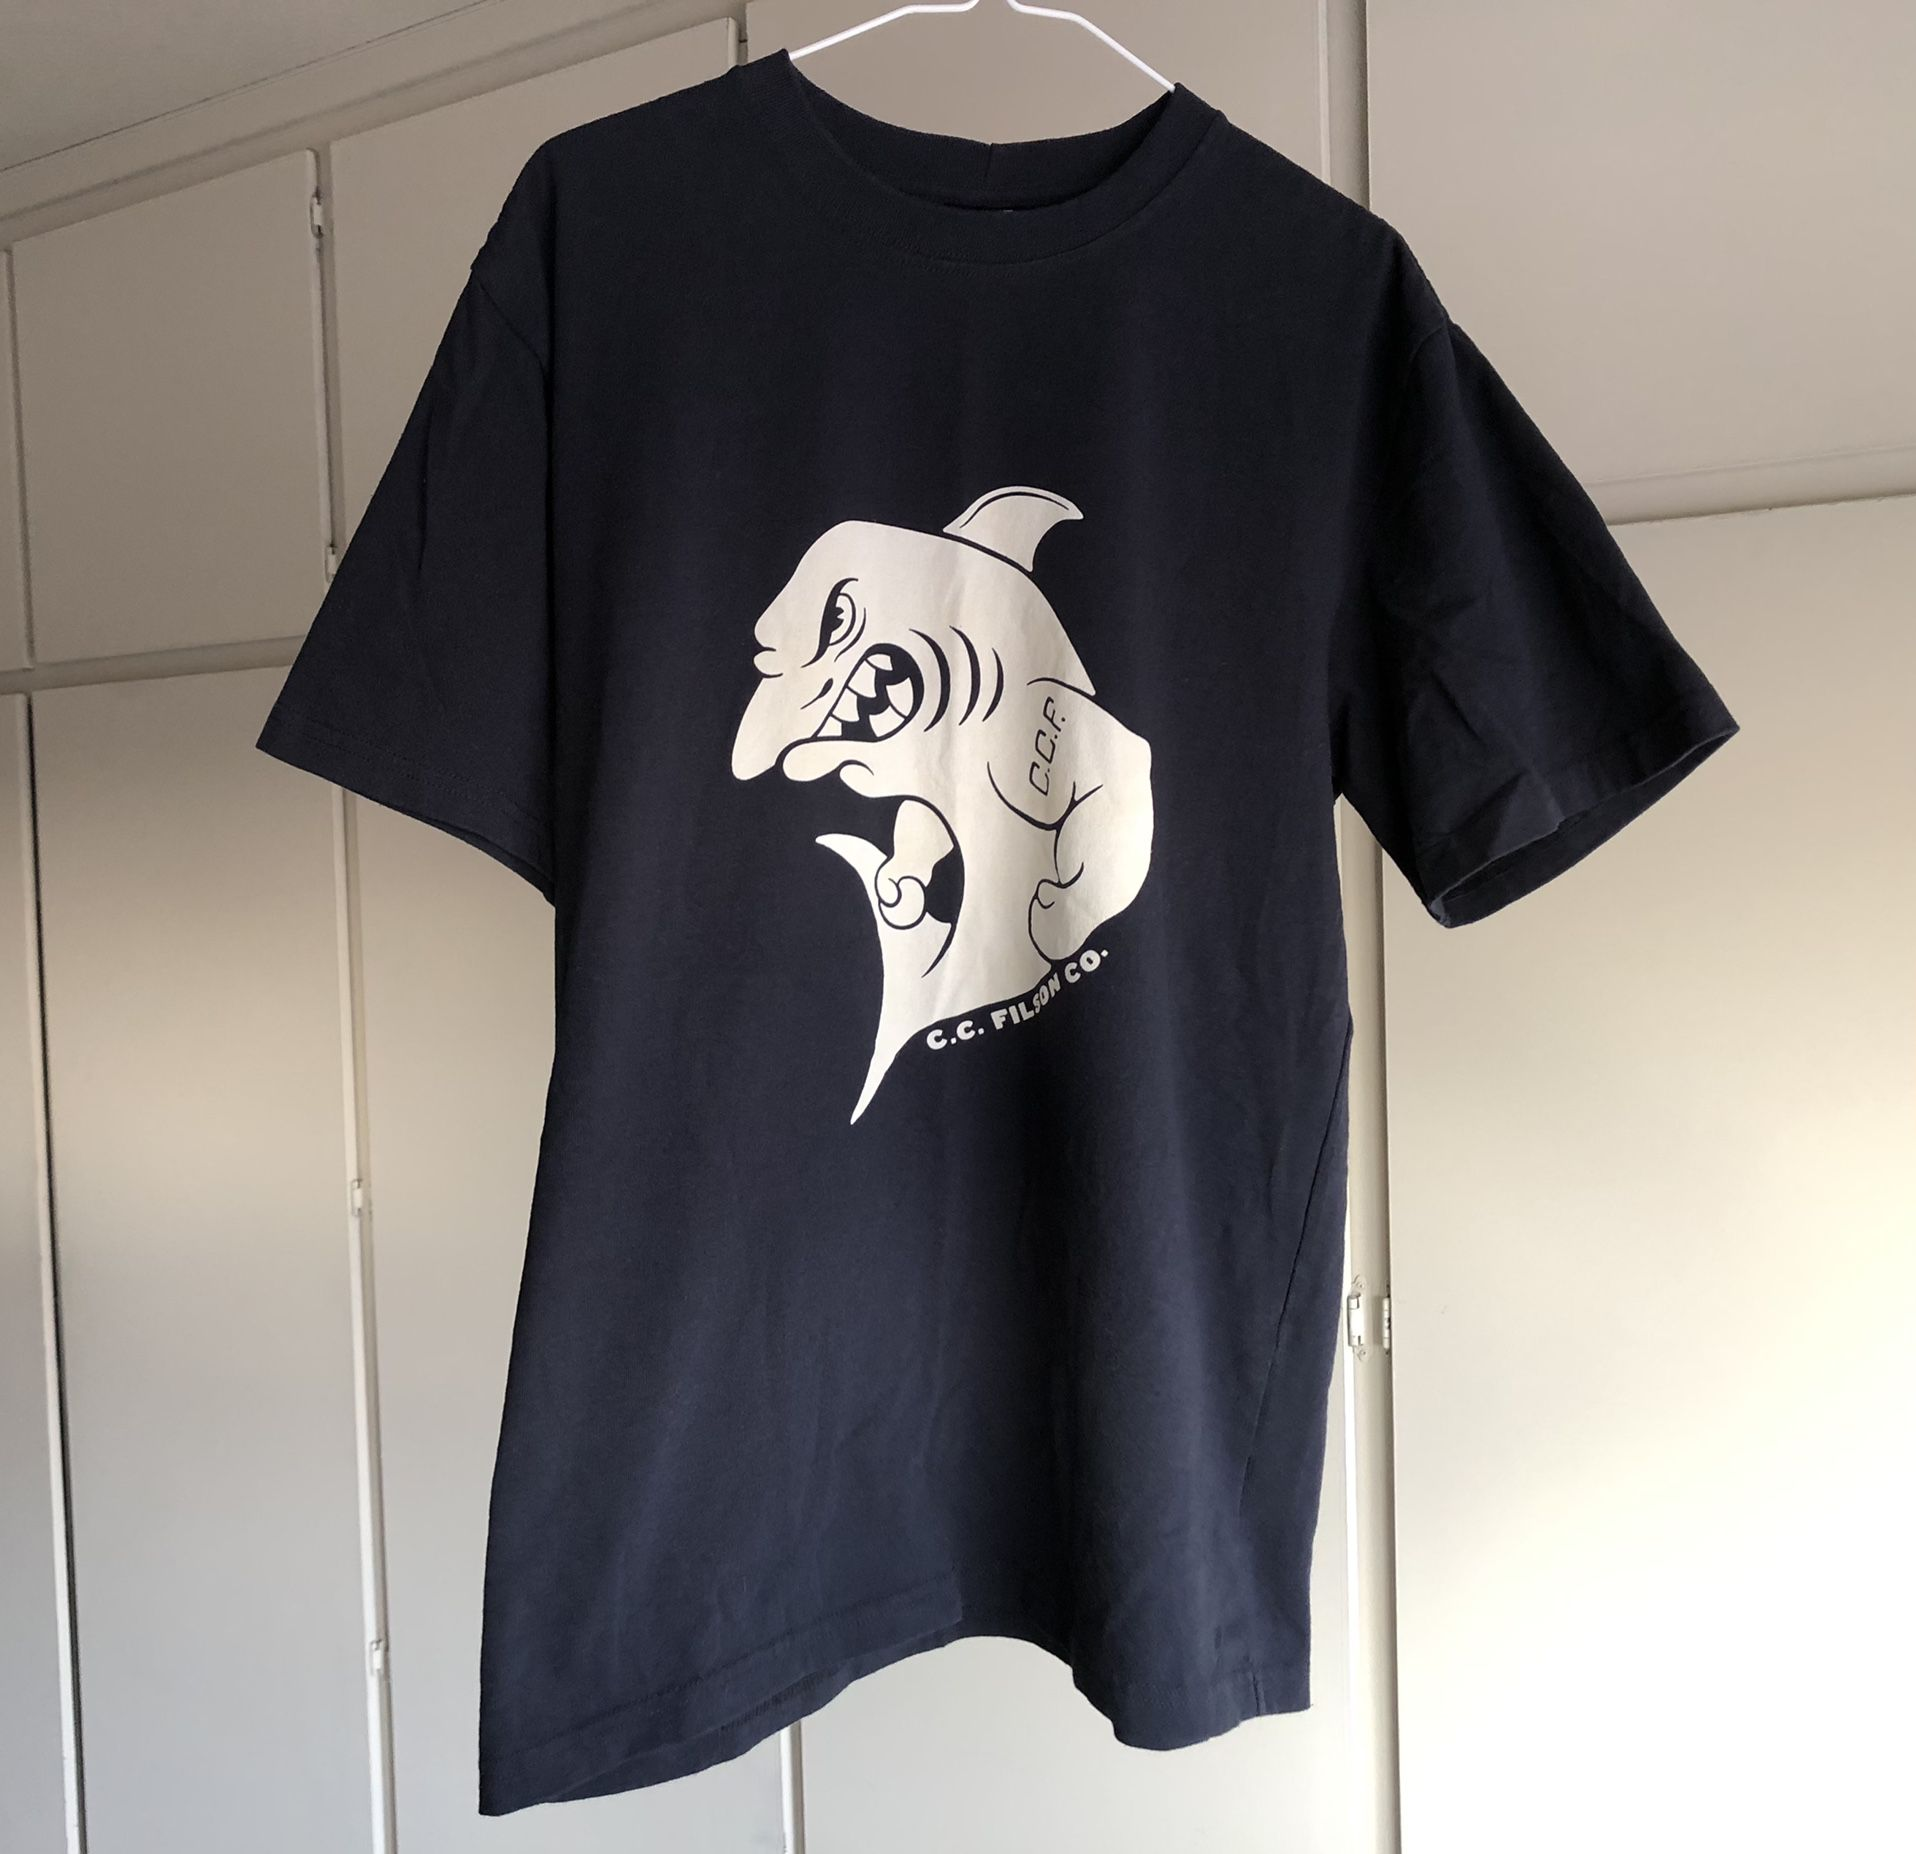 Filson C.C.F. Shark graphic shirt CCF Seattle Ballard Store printed excellent durable quality garment heritage an American Tradition graphic t-shirt u